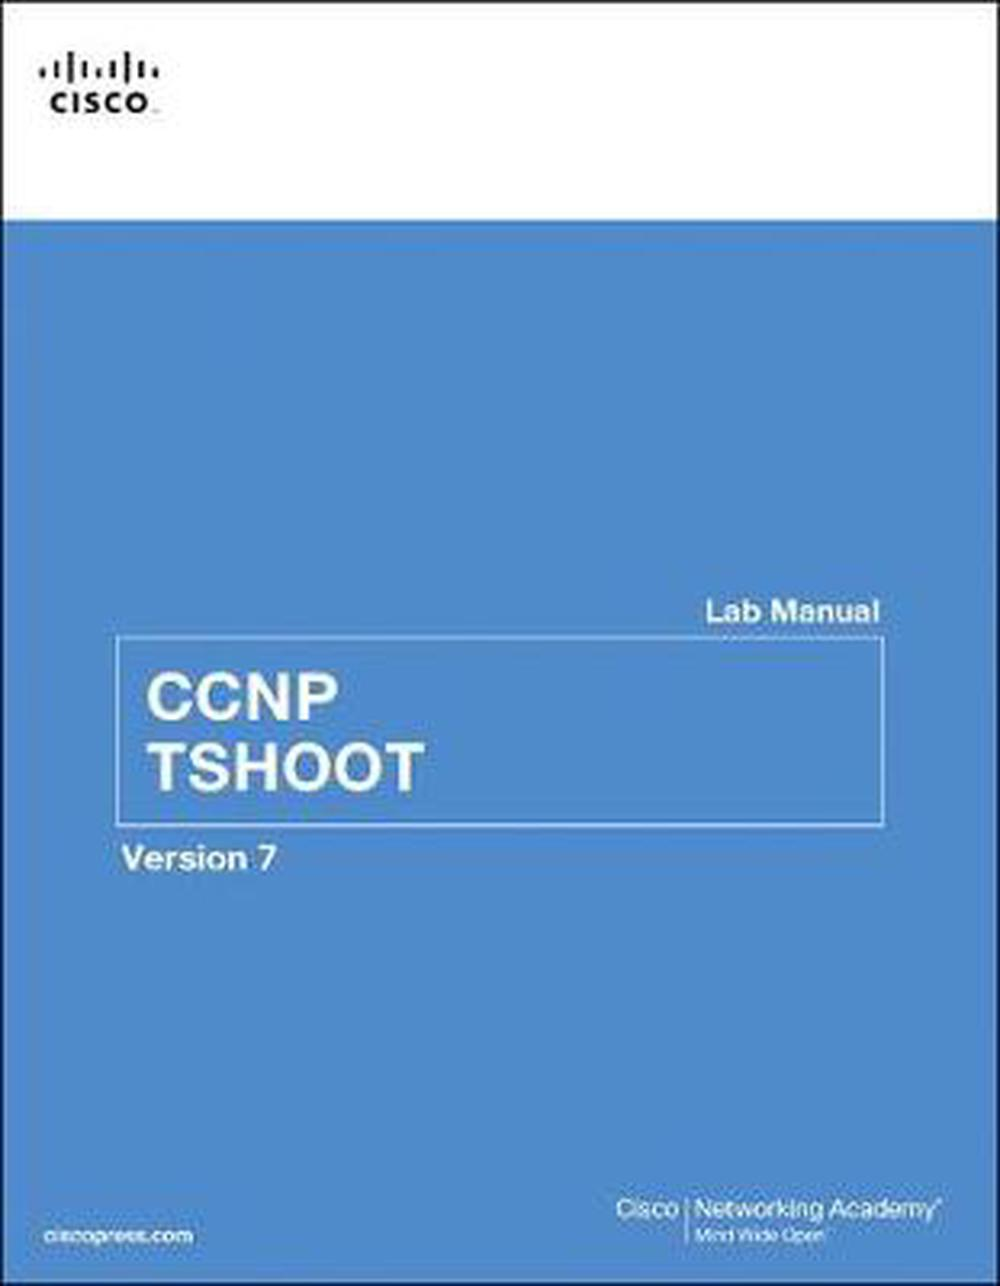 Ccnp troubleshooting image collections free troubleshooting examples ccnp tshoot lab manual by cisco networking academy english ccnp tshoot lab manual leeyfo image collections fandeluxe Choice Image